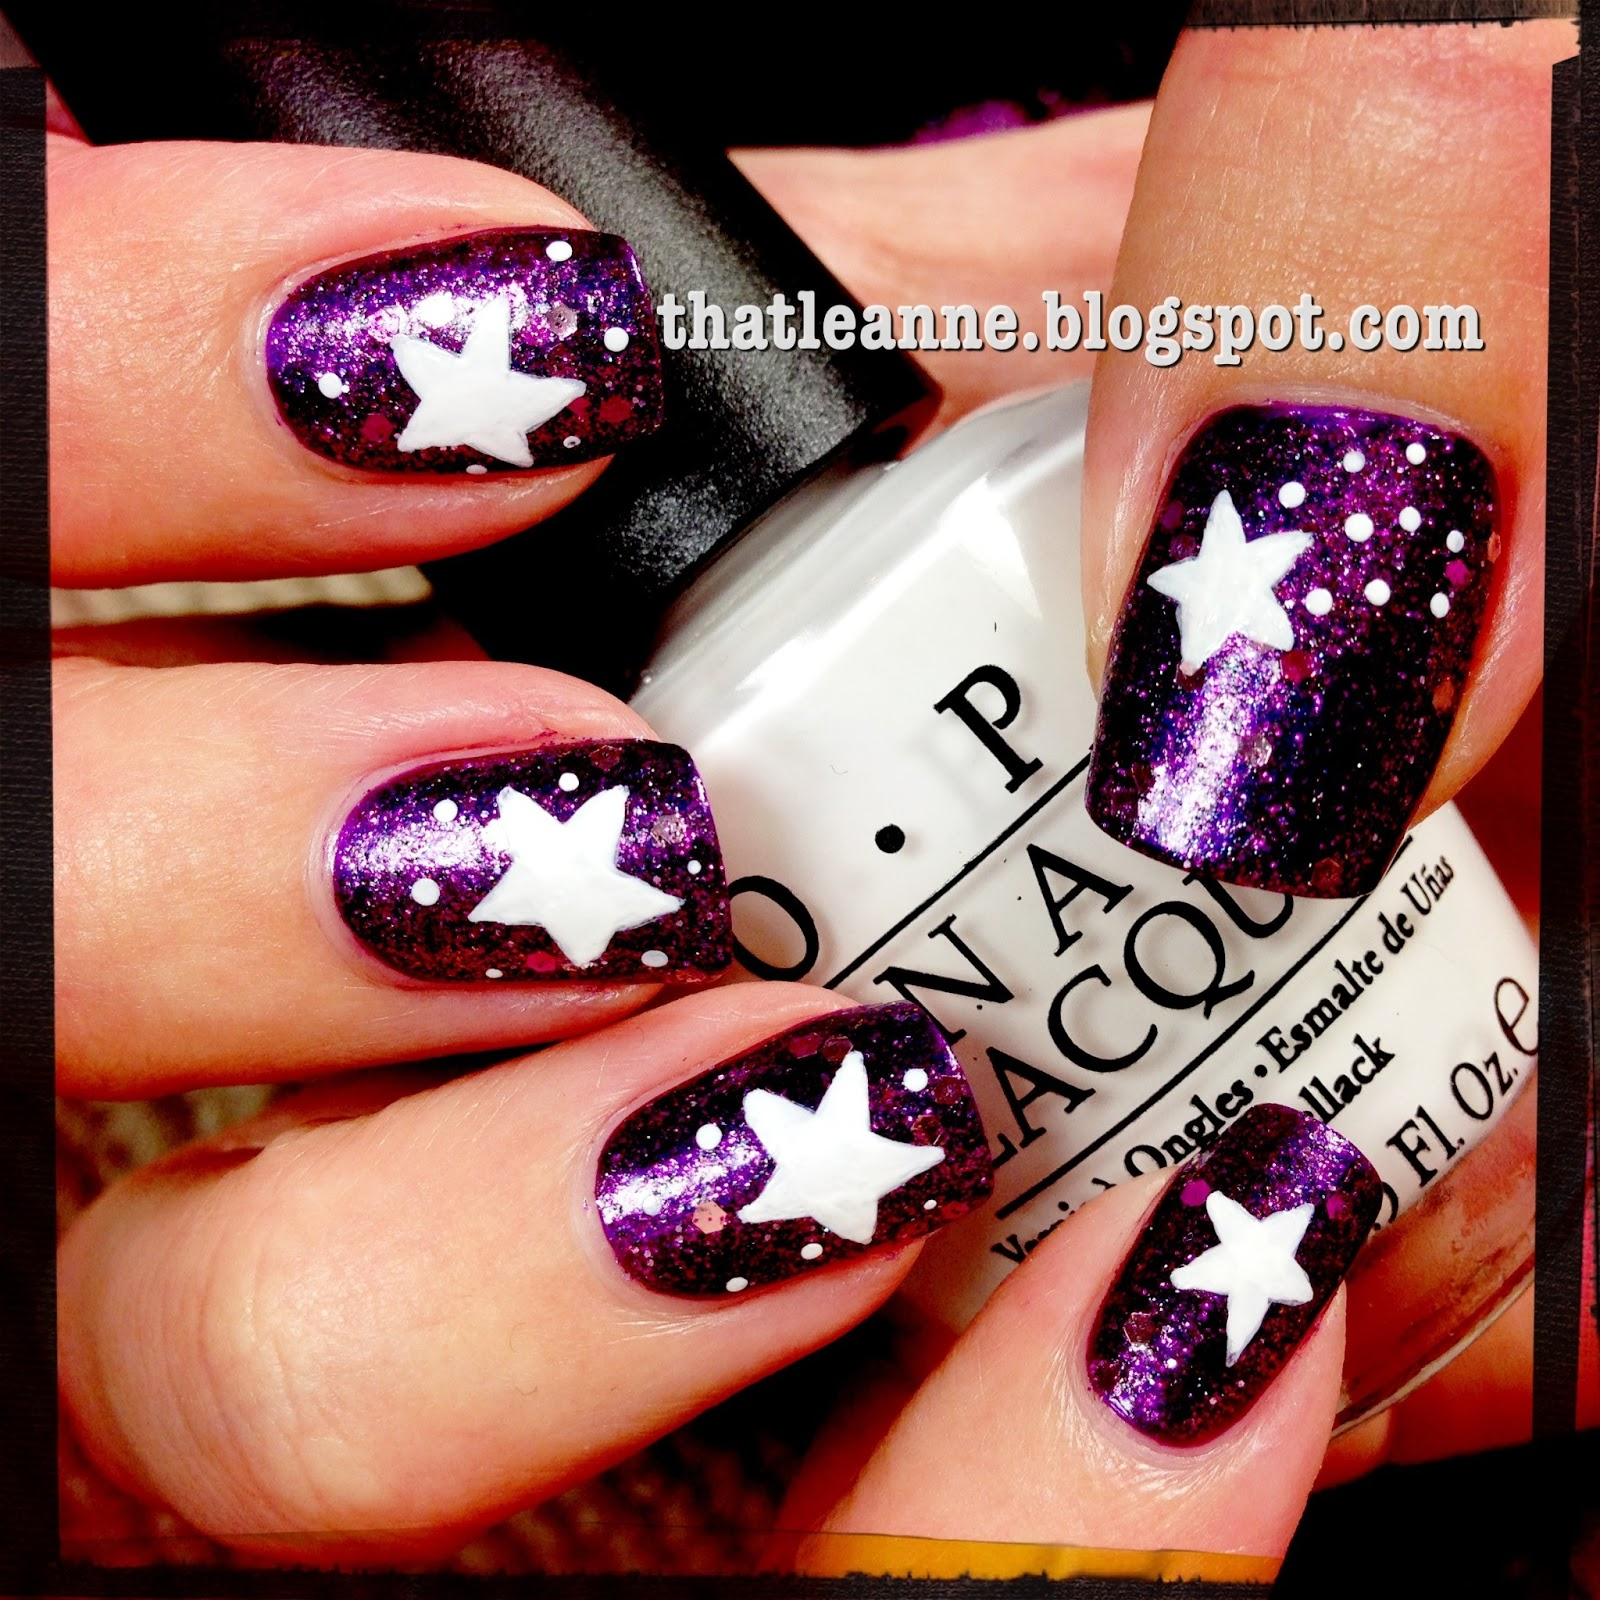 thatleanne: Simple star nail art with butter London HRH, Shambolic